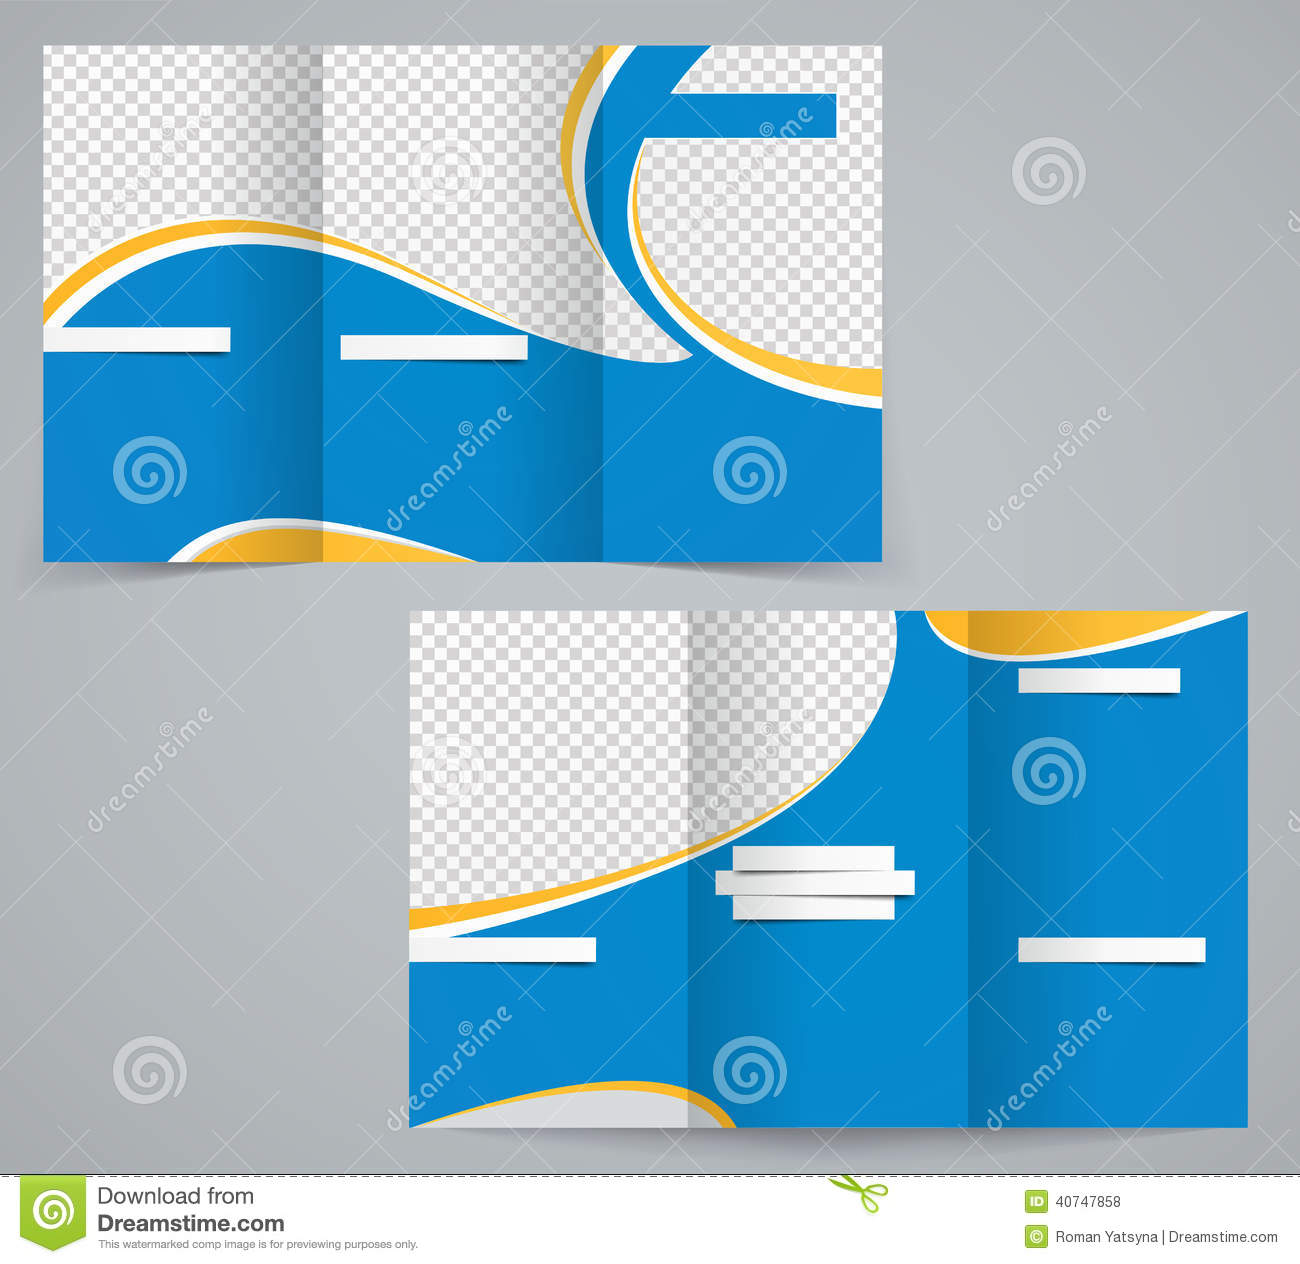 flyer design template or a magazine cover in blu stock vector three fold business brochure template corporate flyer or cover design in blue colors royalty